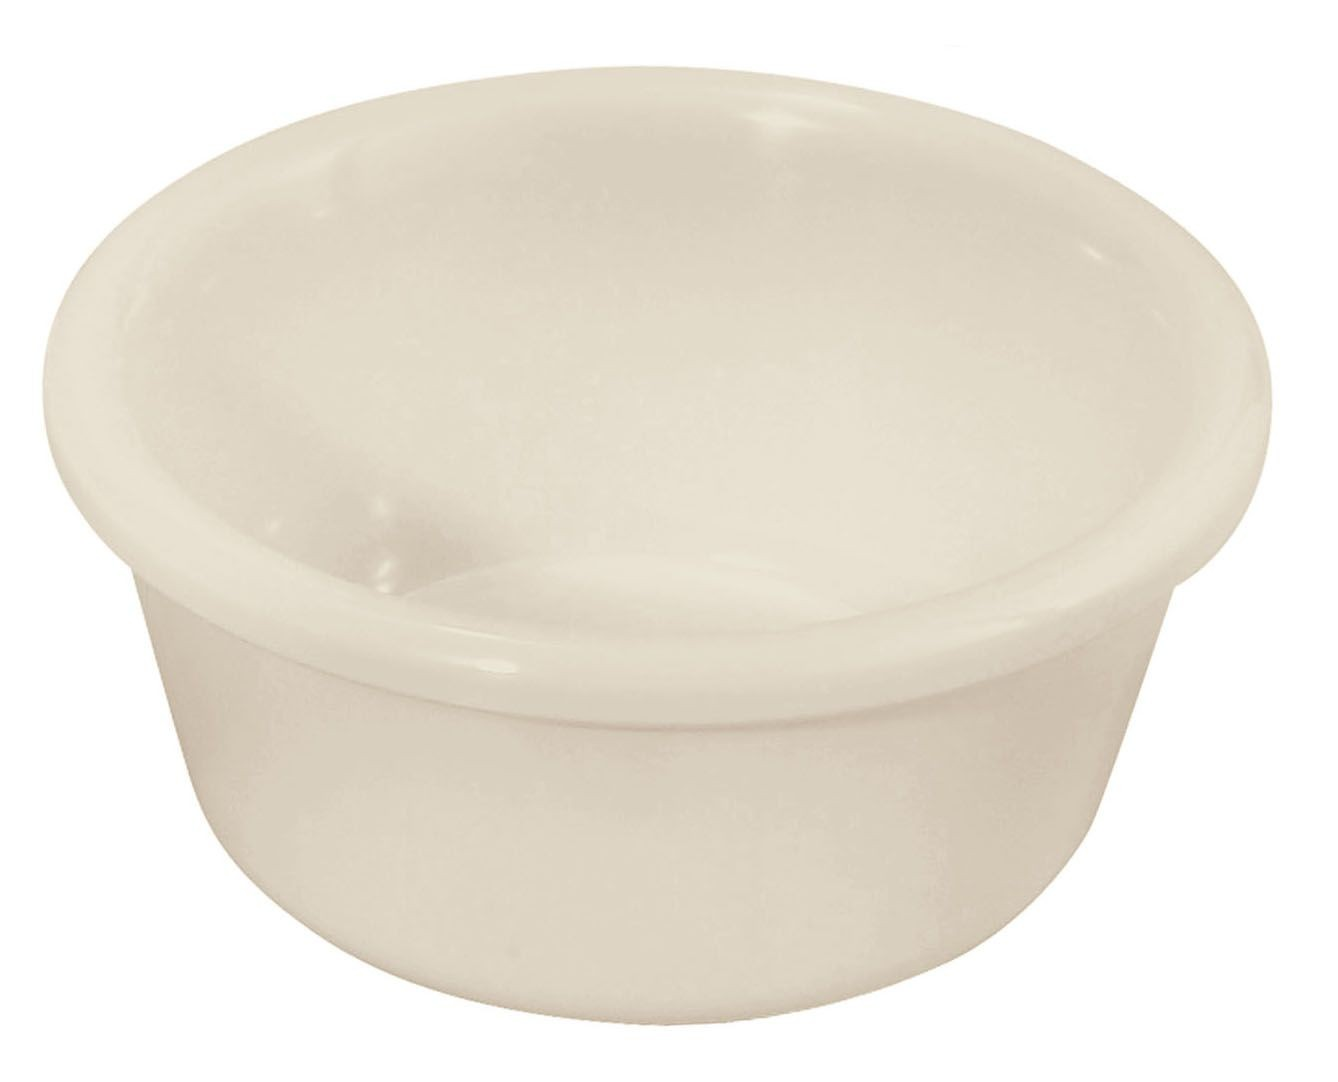 6 oz. Plain Plastic Ramekin (Bone)